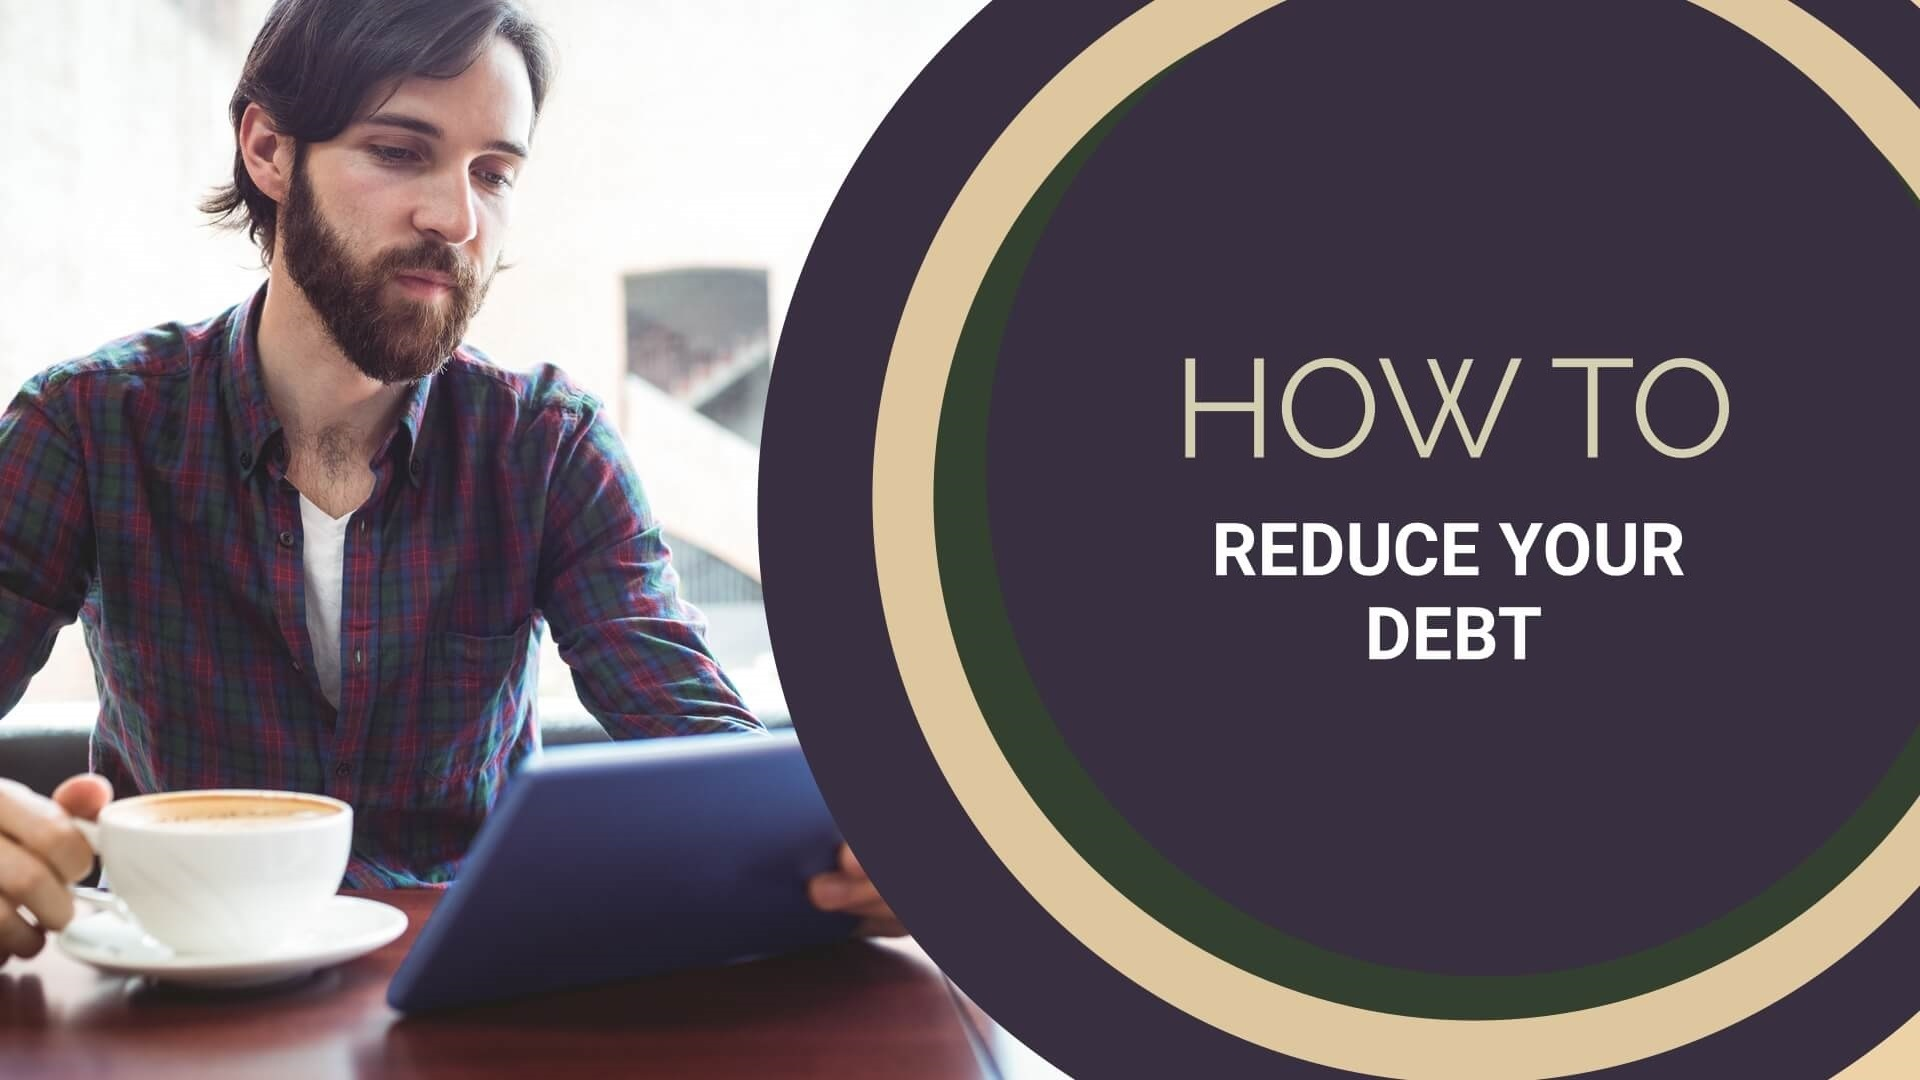 Different ways to reduce the debt and avoid collections